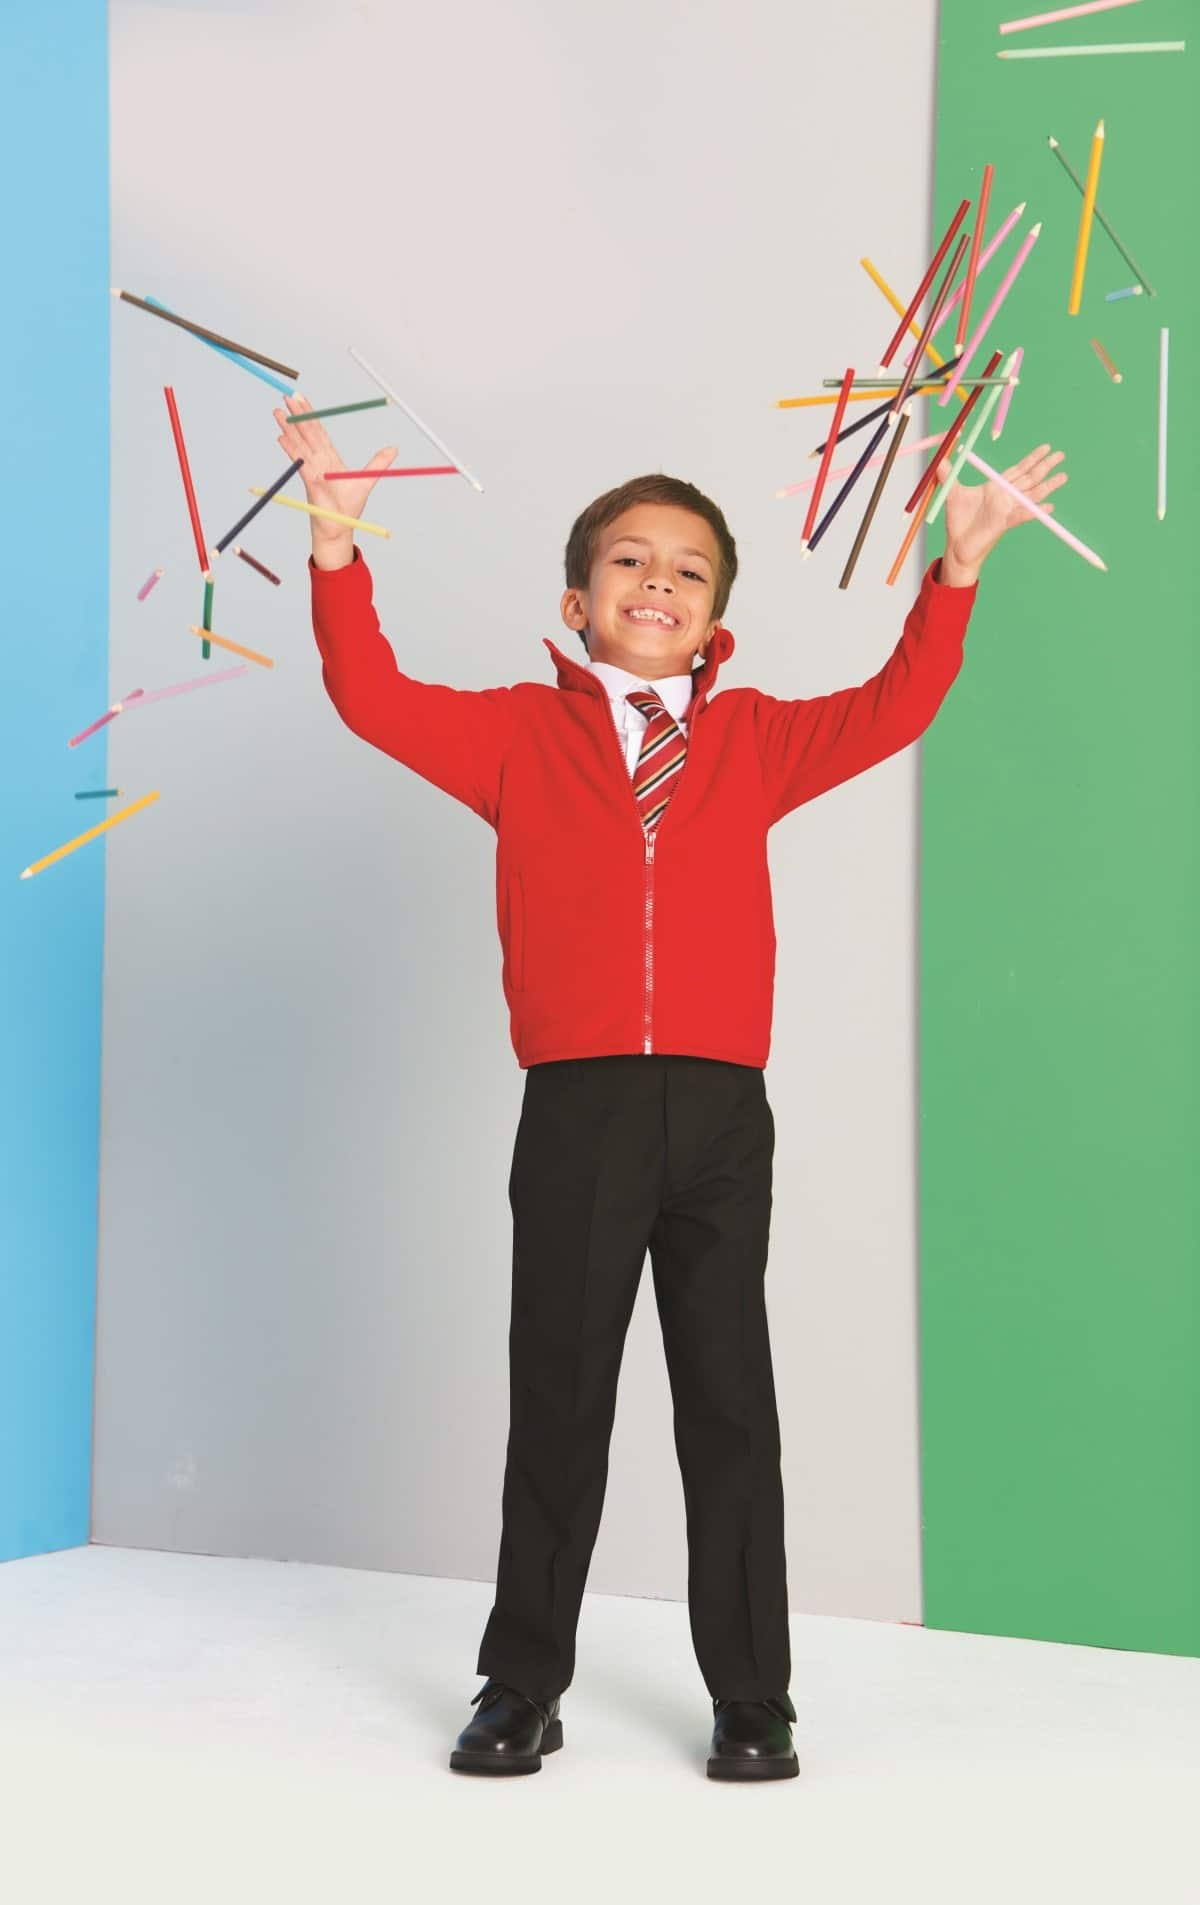 School kid throwing pencils in the air